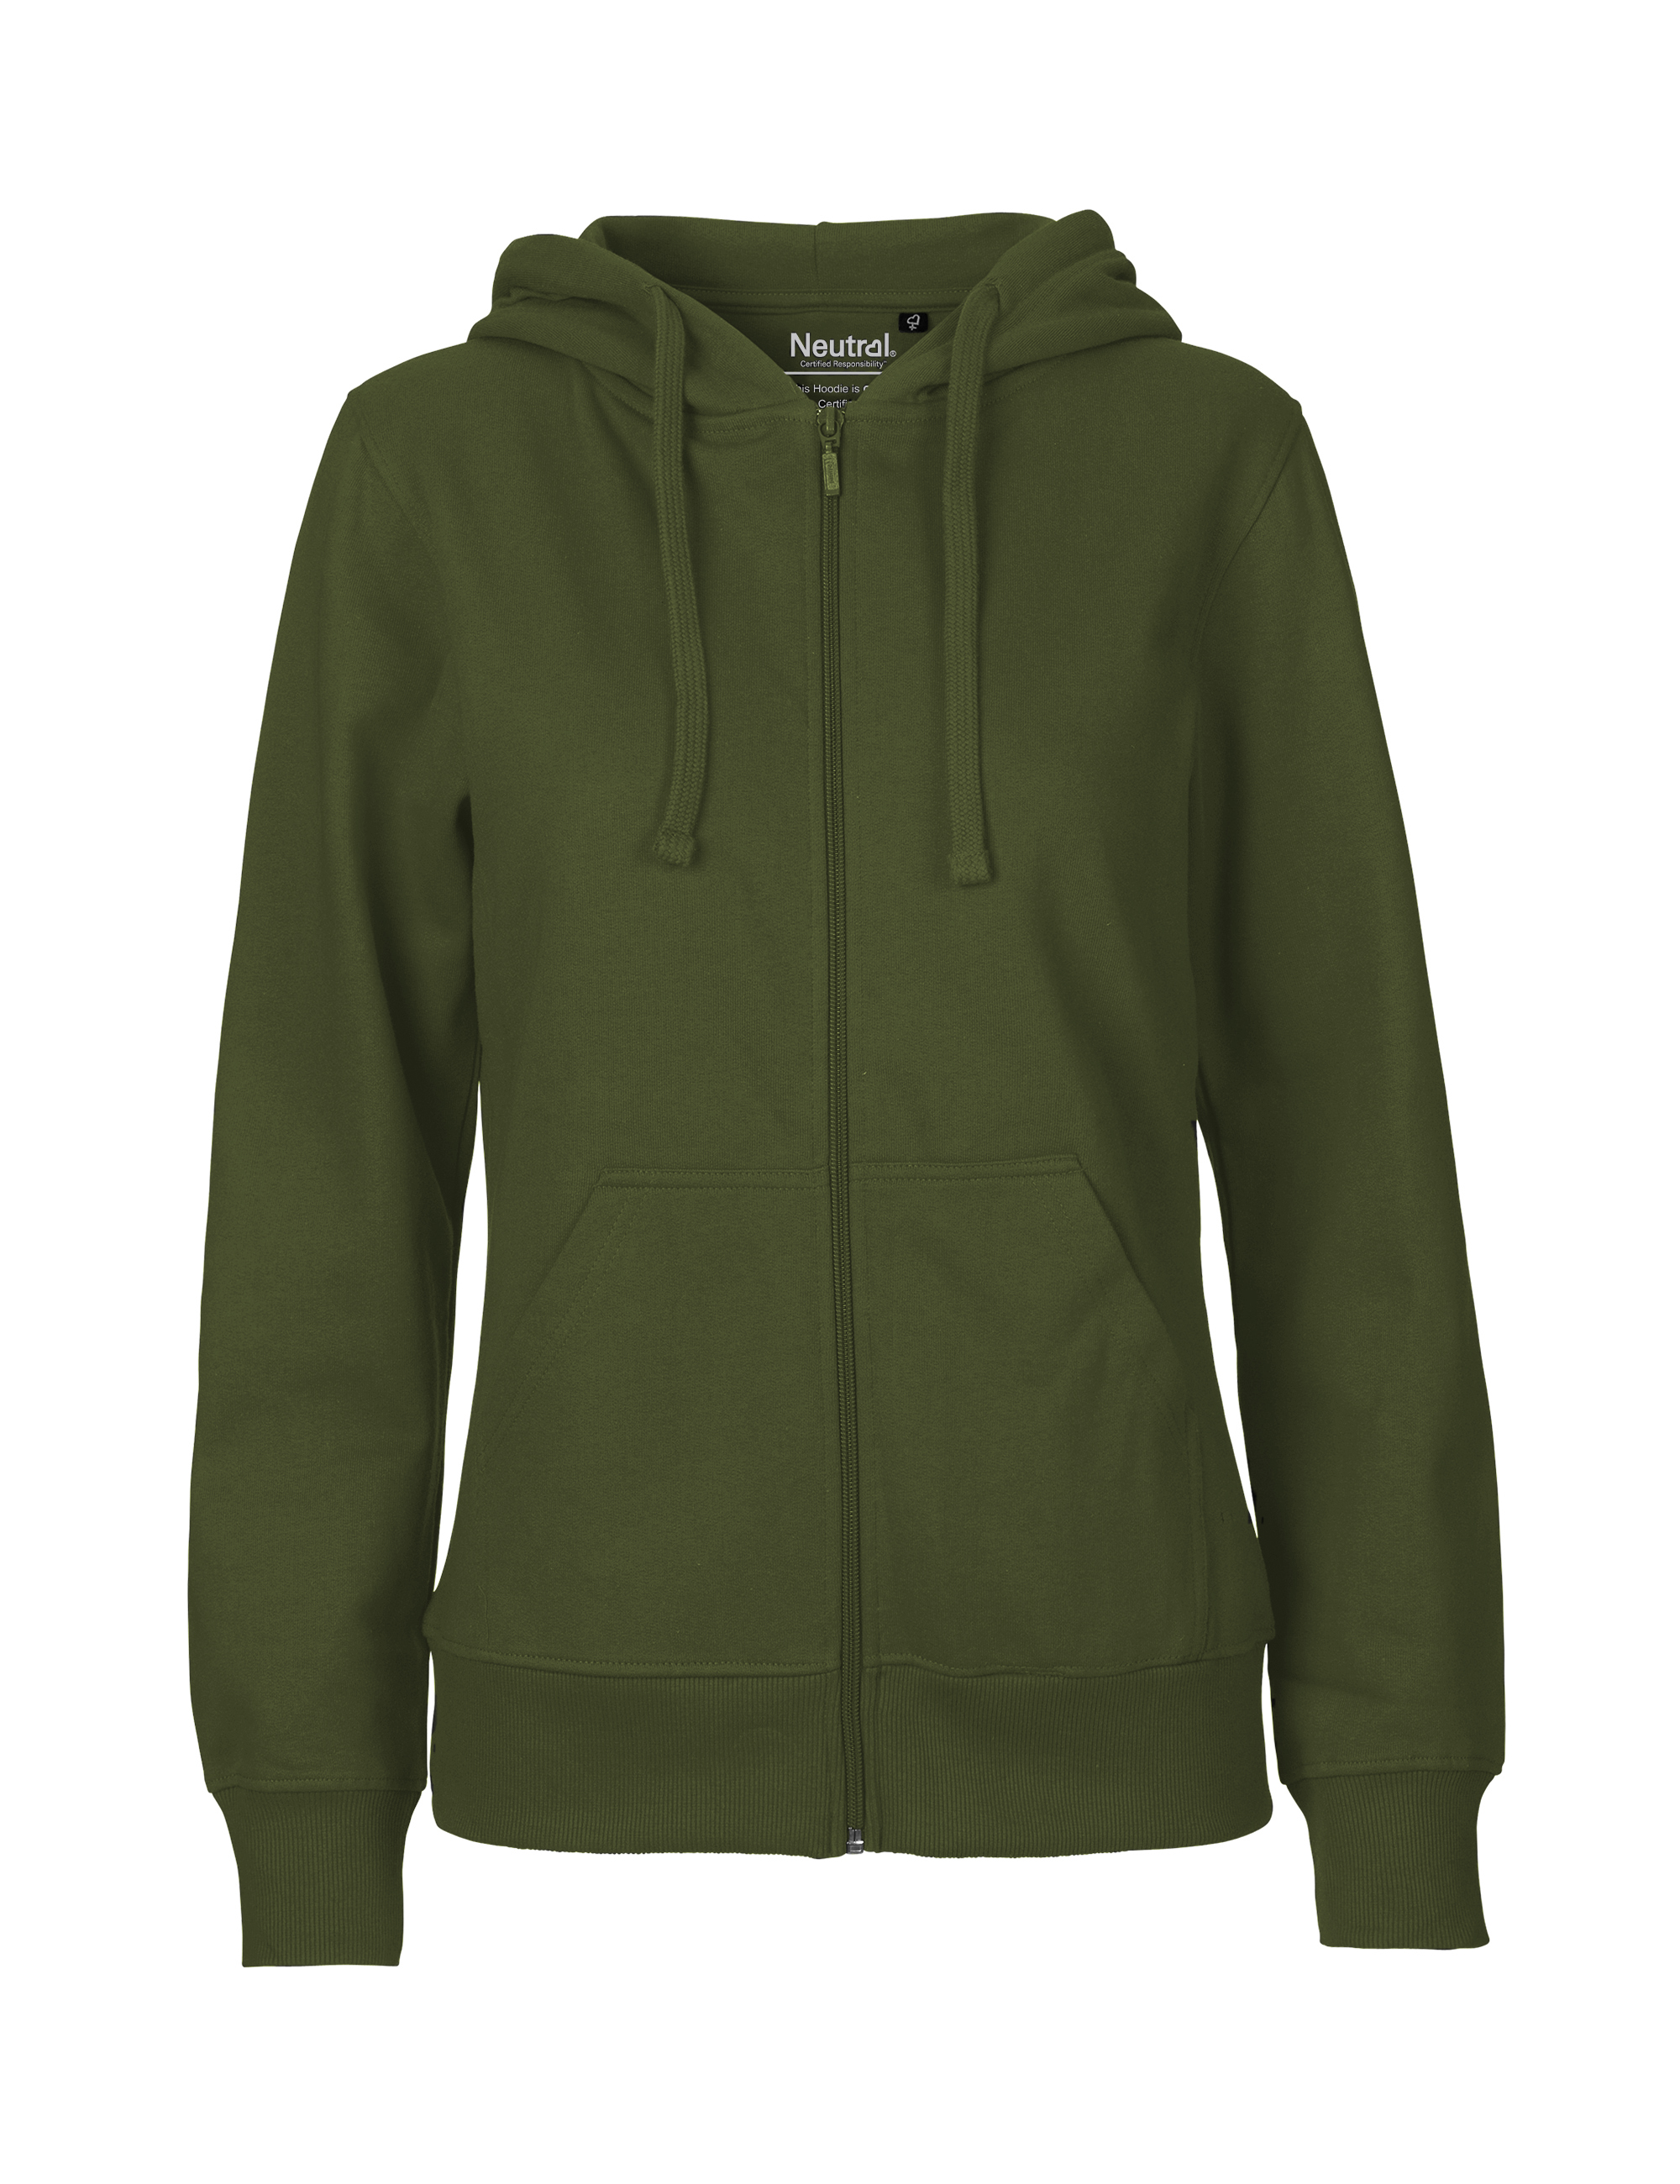 O83301 Ladies Hoodie w. Zip i Military